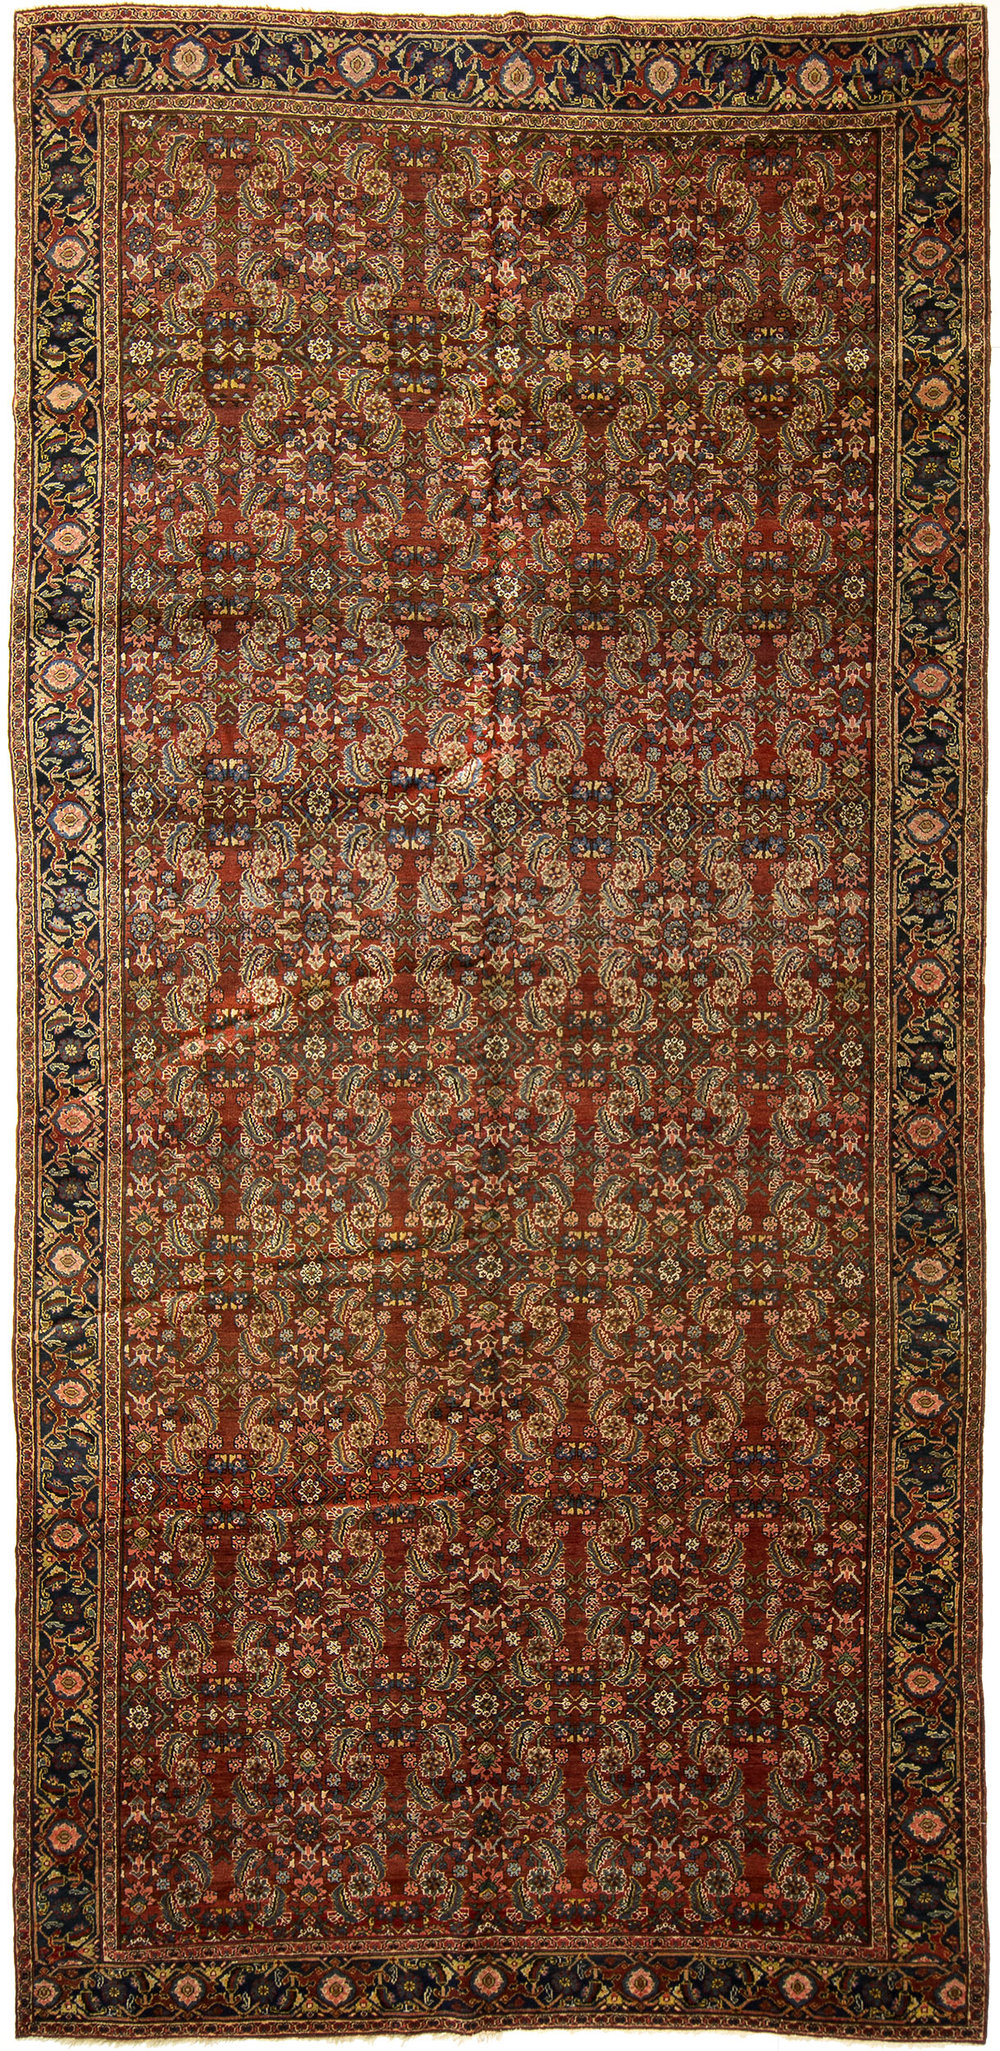 "Tabriz Gallery Carpet 15' 0"" x 7' 5"""